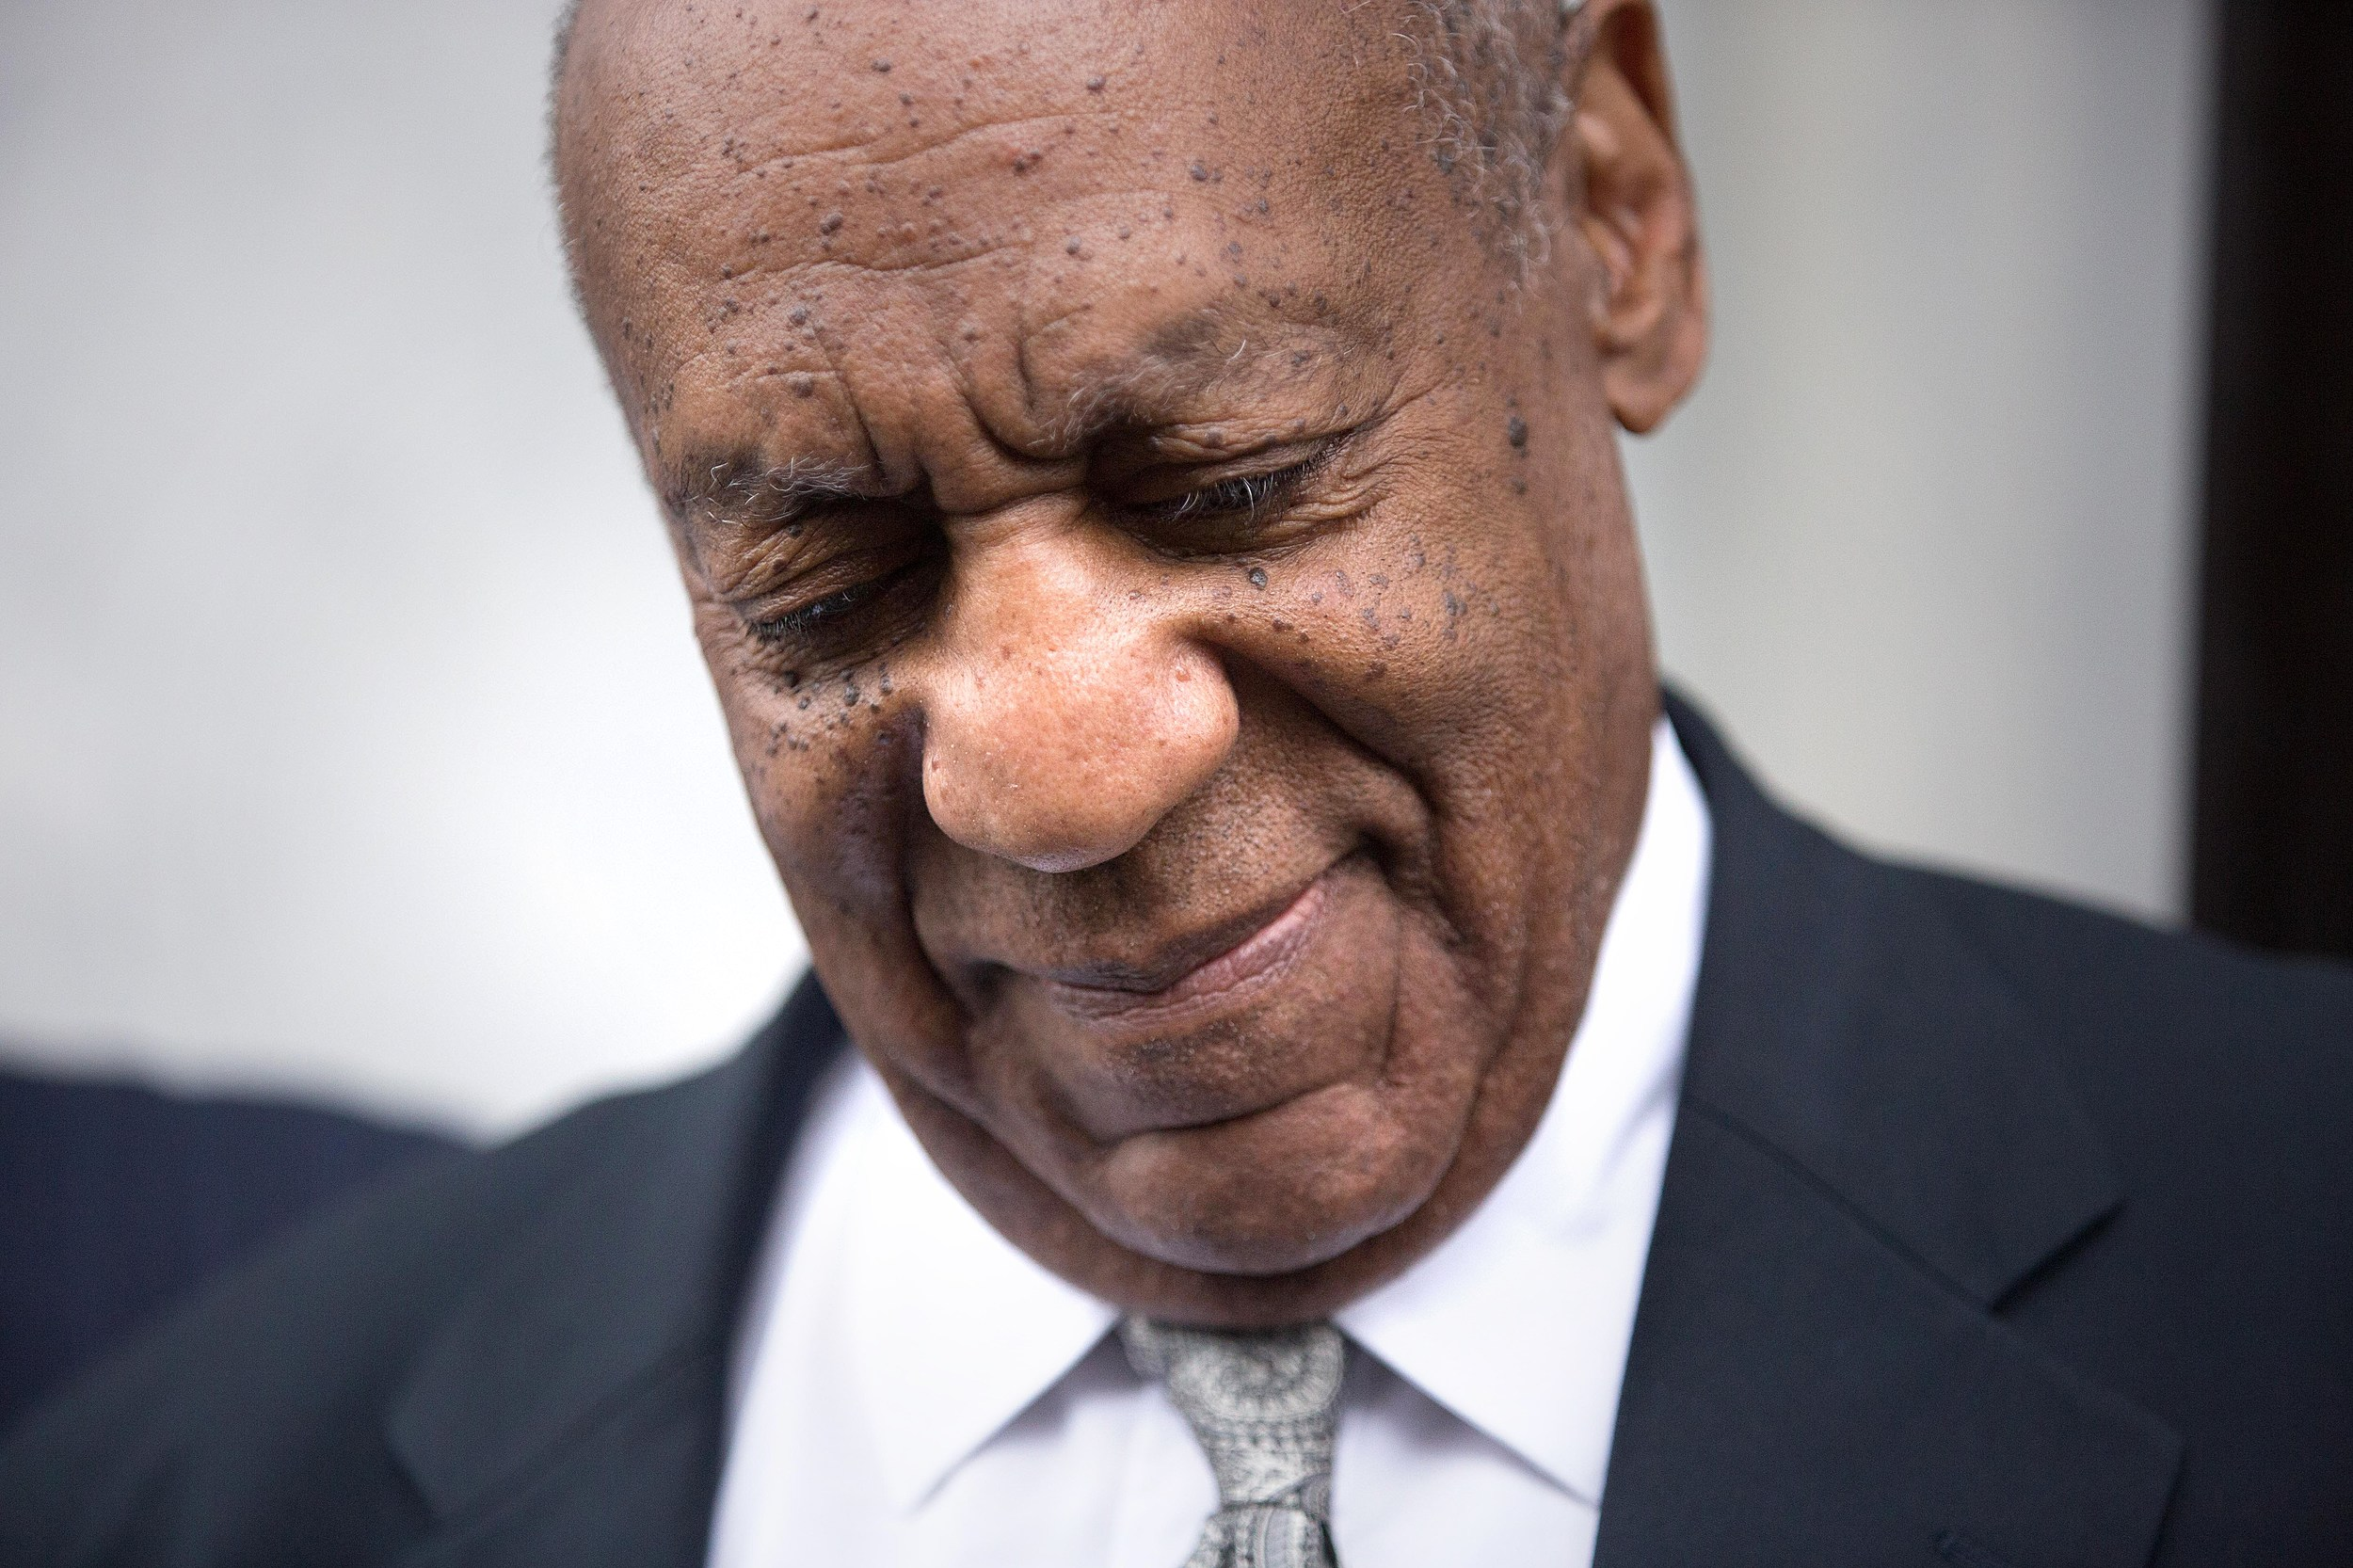 Lena Dunham and other celebrities react to Cosby mistrial